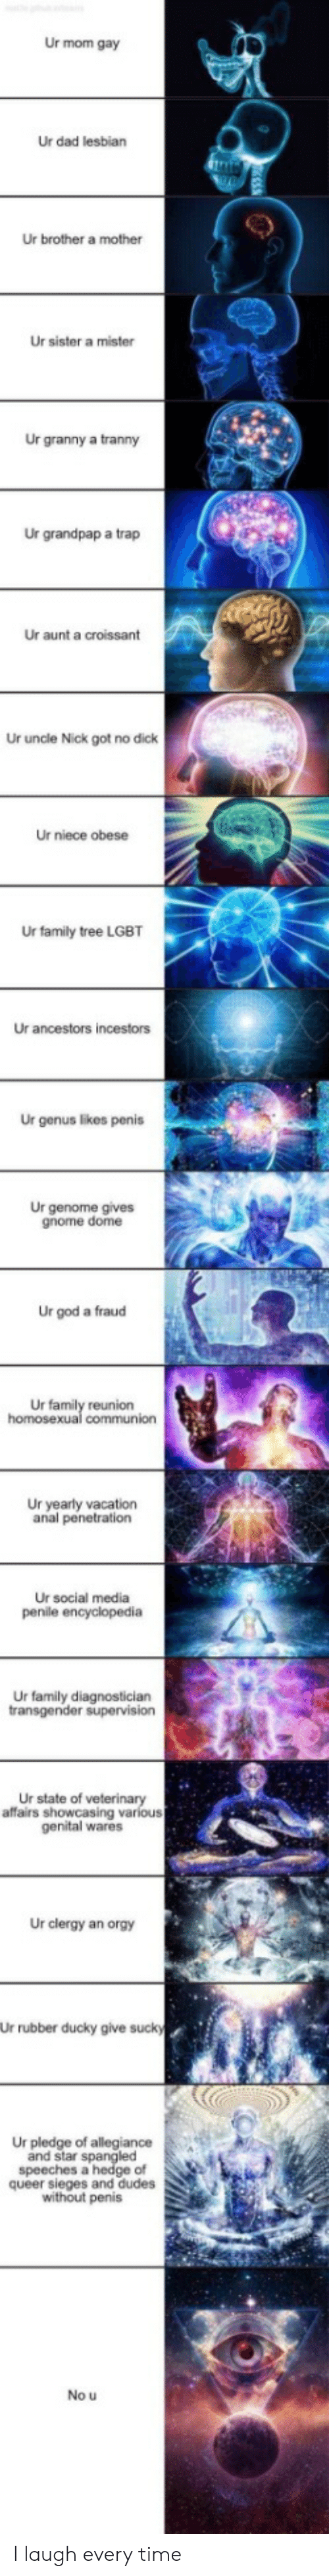 ur mom: Ur mom gay  Ur dad lesbian  Ur brother a mother  Ur sister a mister  Ur granny a tranny  Ur grandpap a trap  Ur aunt a croissant  Ur uncle Nick got no dick  Ur niece obese  Ur family tree LGBT  Ur ancestors incestors  Ur genus likes penis  Ur genome gives  gnome dome  Ur god a fraud  Ur family reunion  homosexual communion  Ur yearly vacation  anal penetration  Ur social media  penile encyclopedia  Ur family diagnostician  transgender supervision  Ur state of veterinary  affairs showcasing various  genital wares  Ur clergy an orgy  Ur rubber ducky give sucky  Ur pledge of allegiance  and star spangled  speeches a hedge of  queer sieges and dudes  without penis  No u I laugh every time